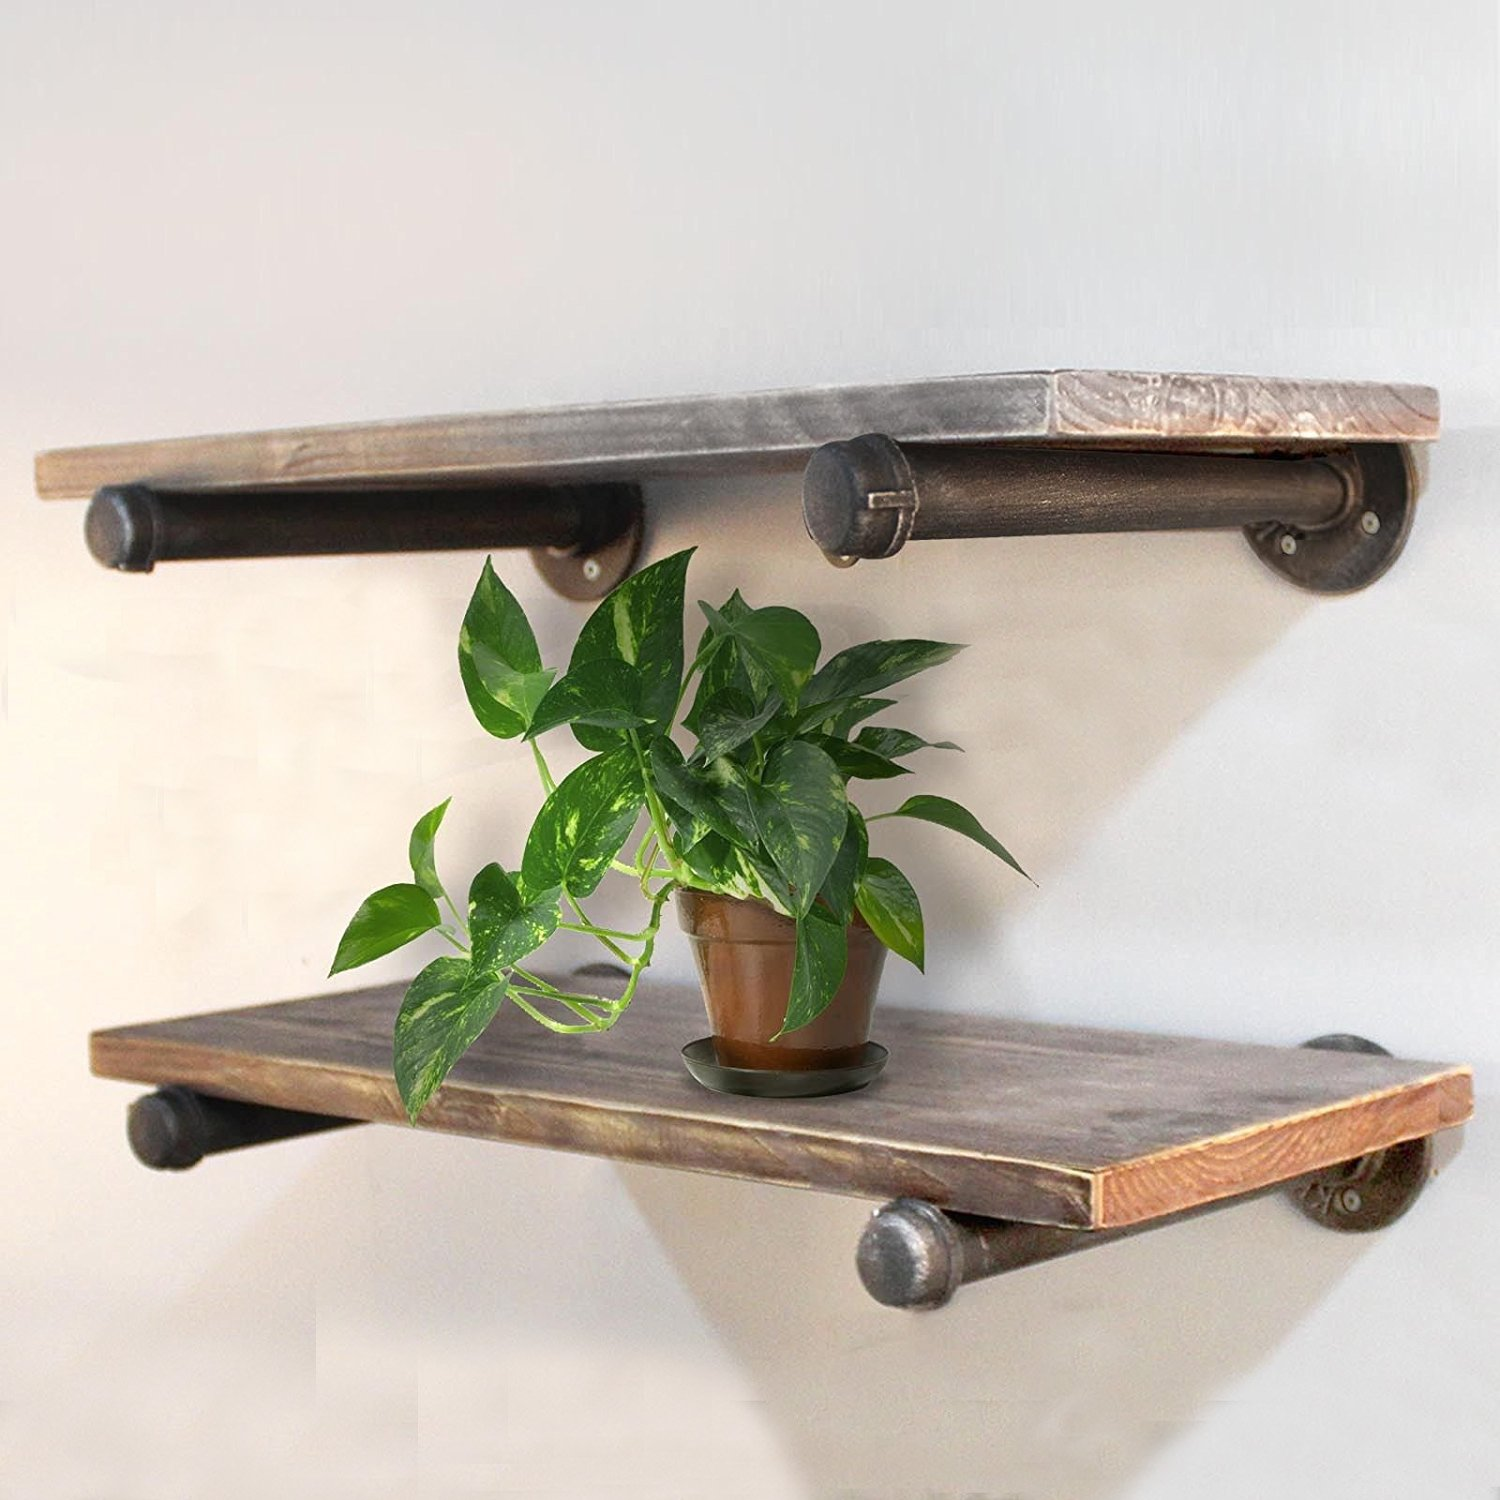 Rustic Industrial Wood Wall Shelves Pipe Shelf Bookcase 24''x10'' (Two Shelf Bookcase) by WGX (Image #1)